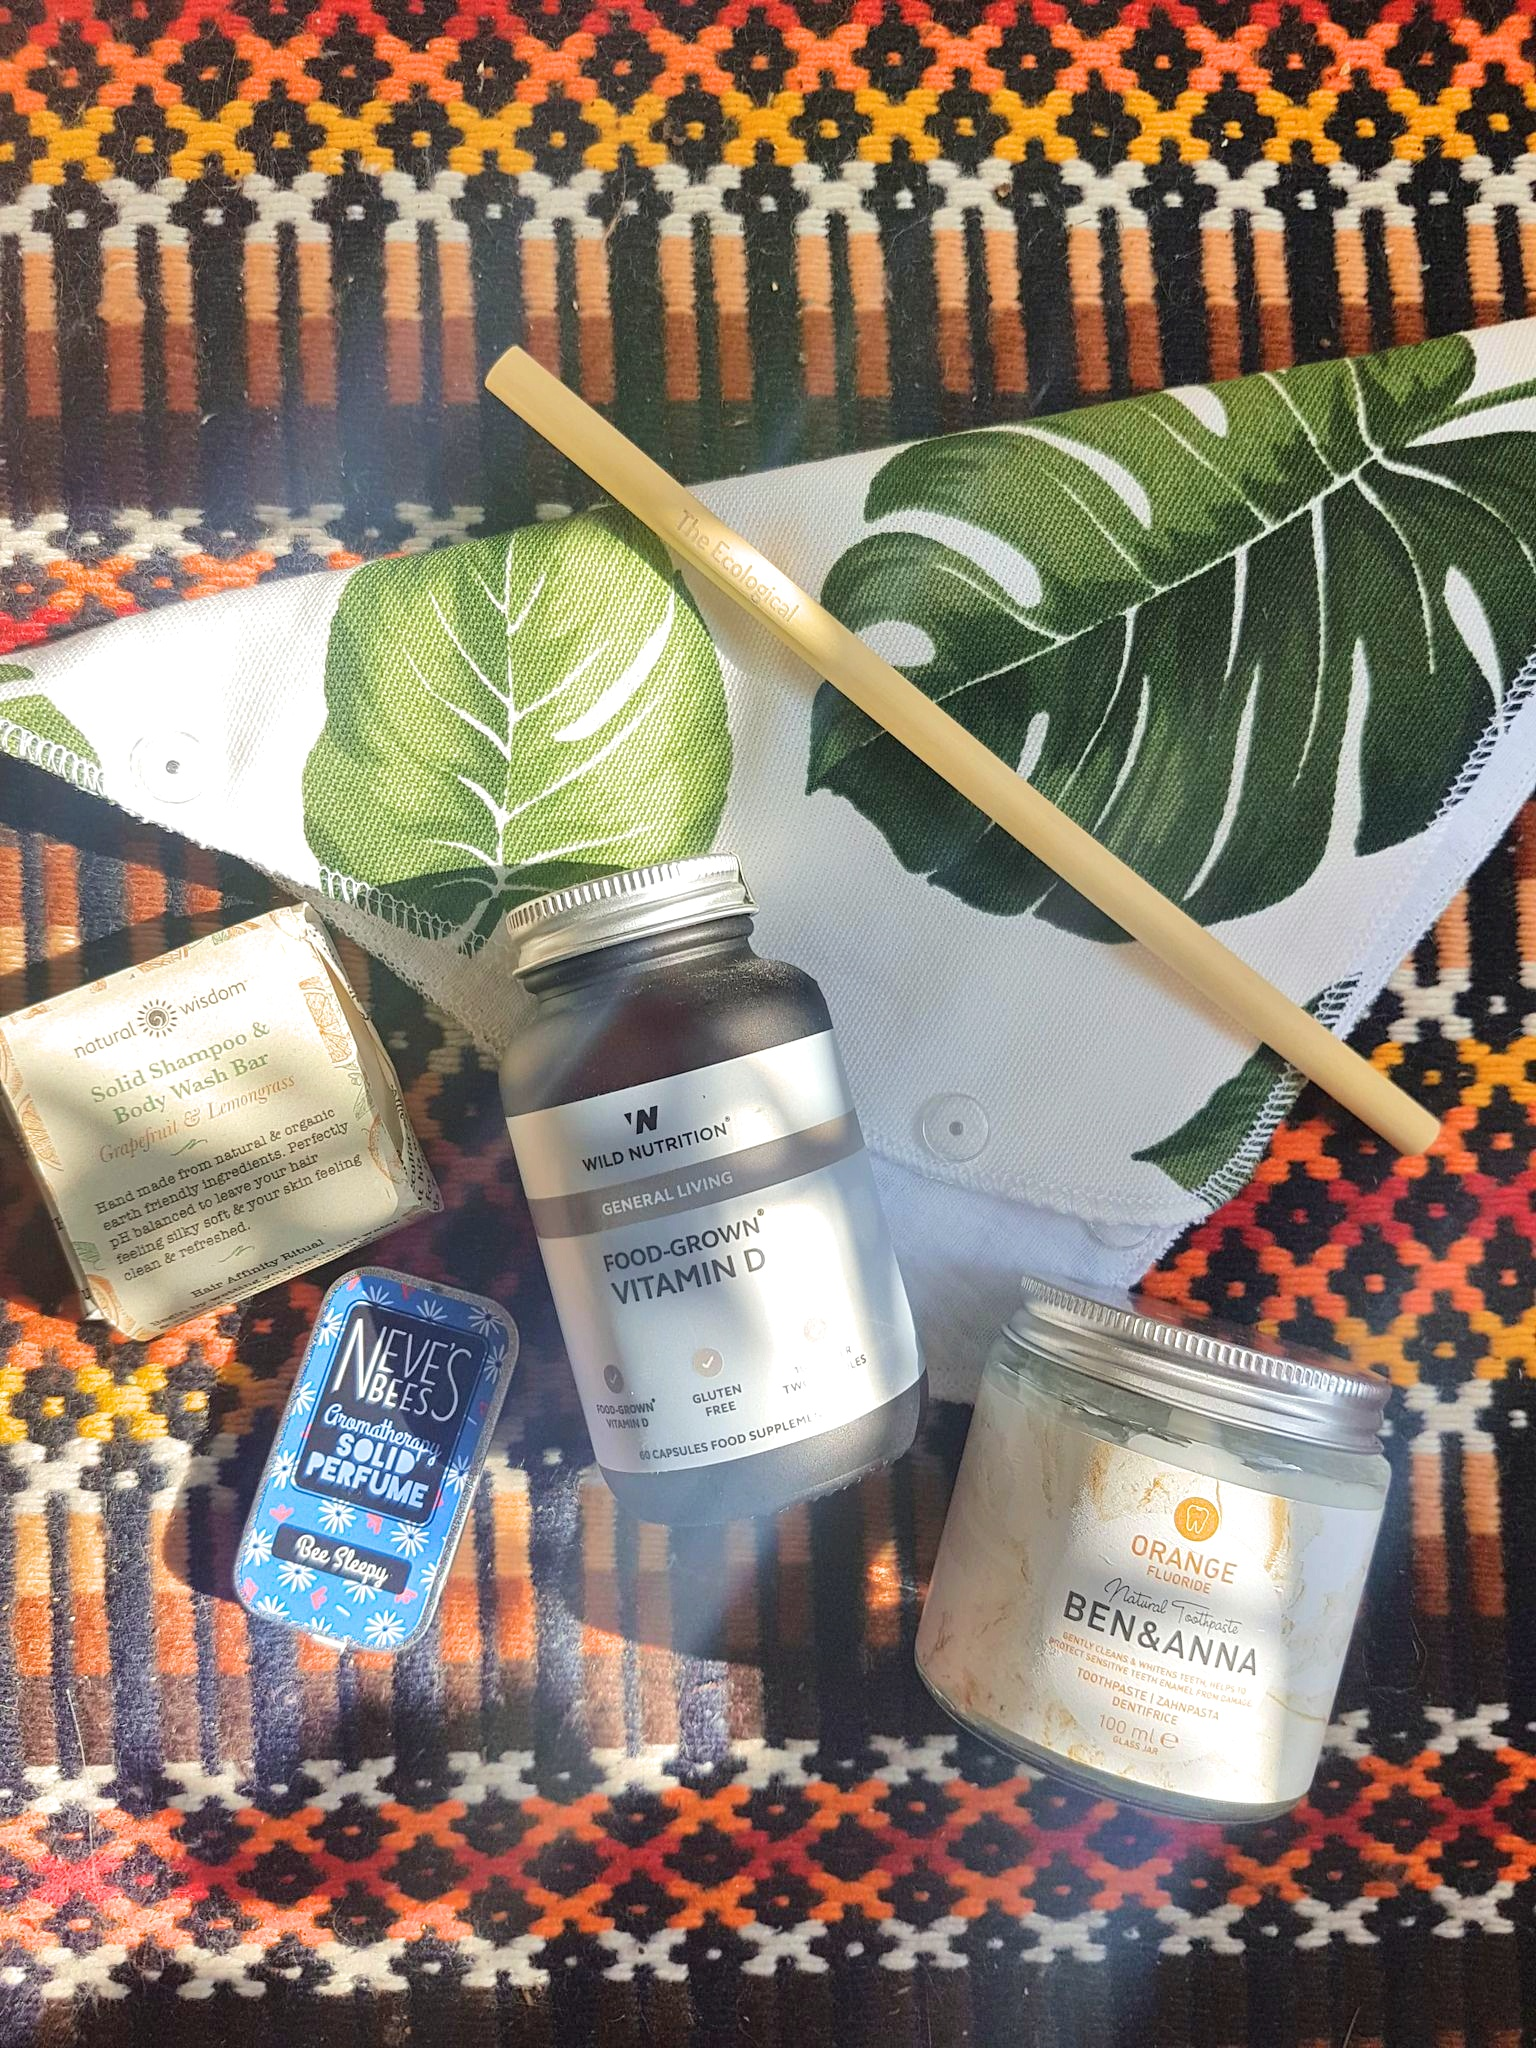 Zero Waste products including bamboo straw, solid perfume, reusable towels, plastic free toothpaste, vegan vitamins, and eco friendly shampoo and body wash